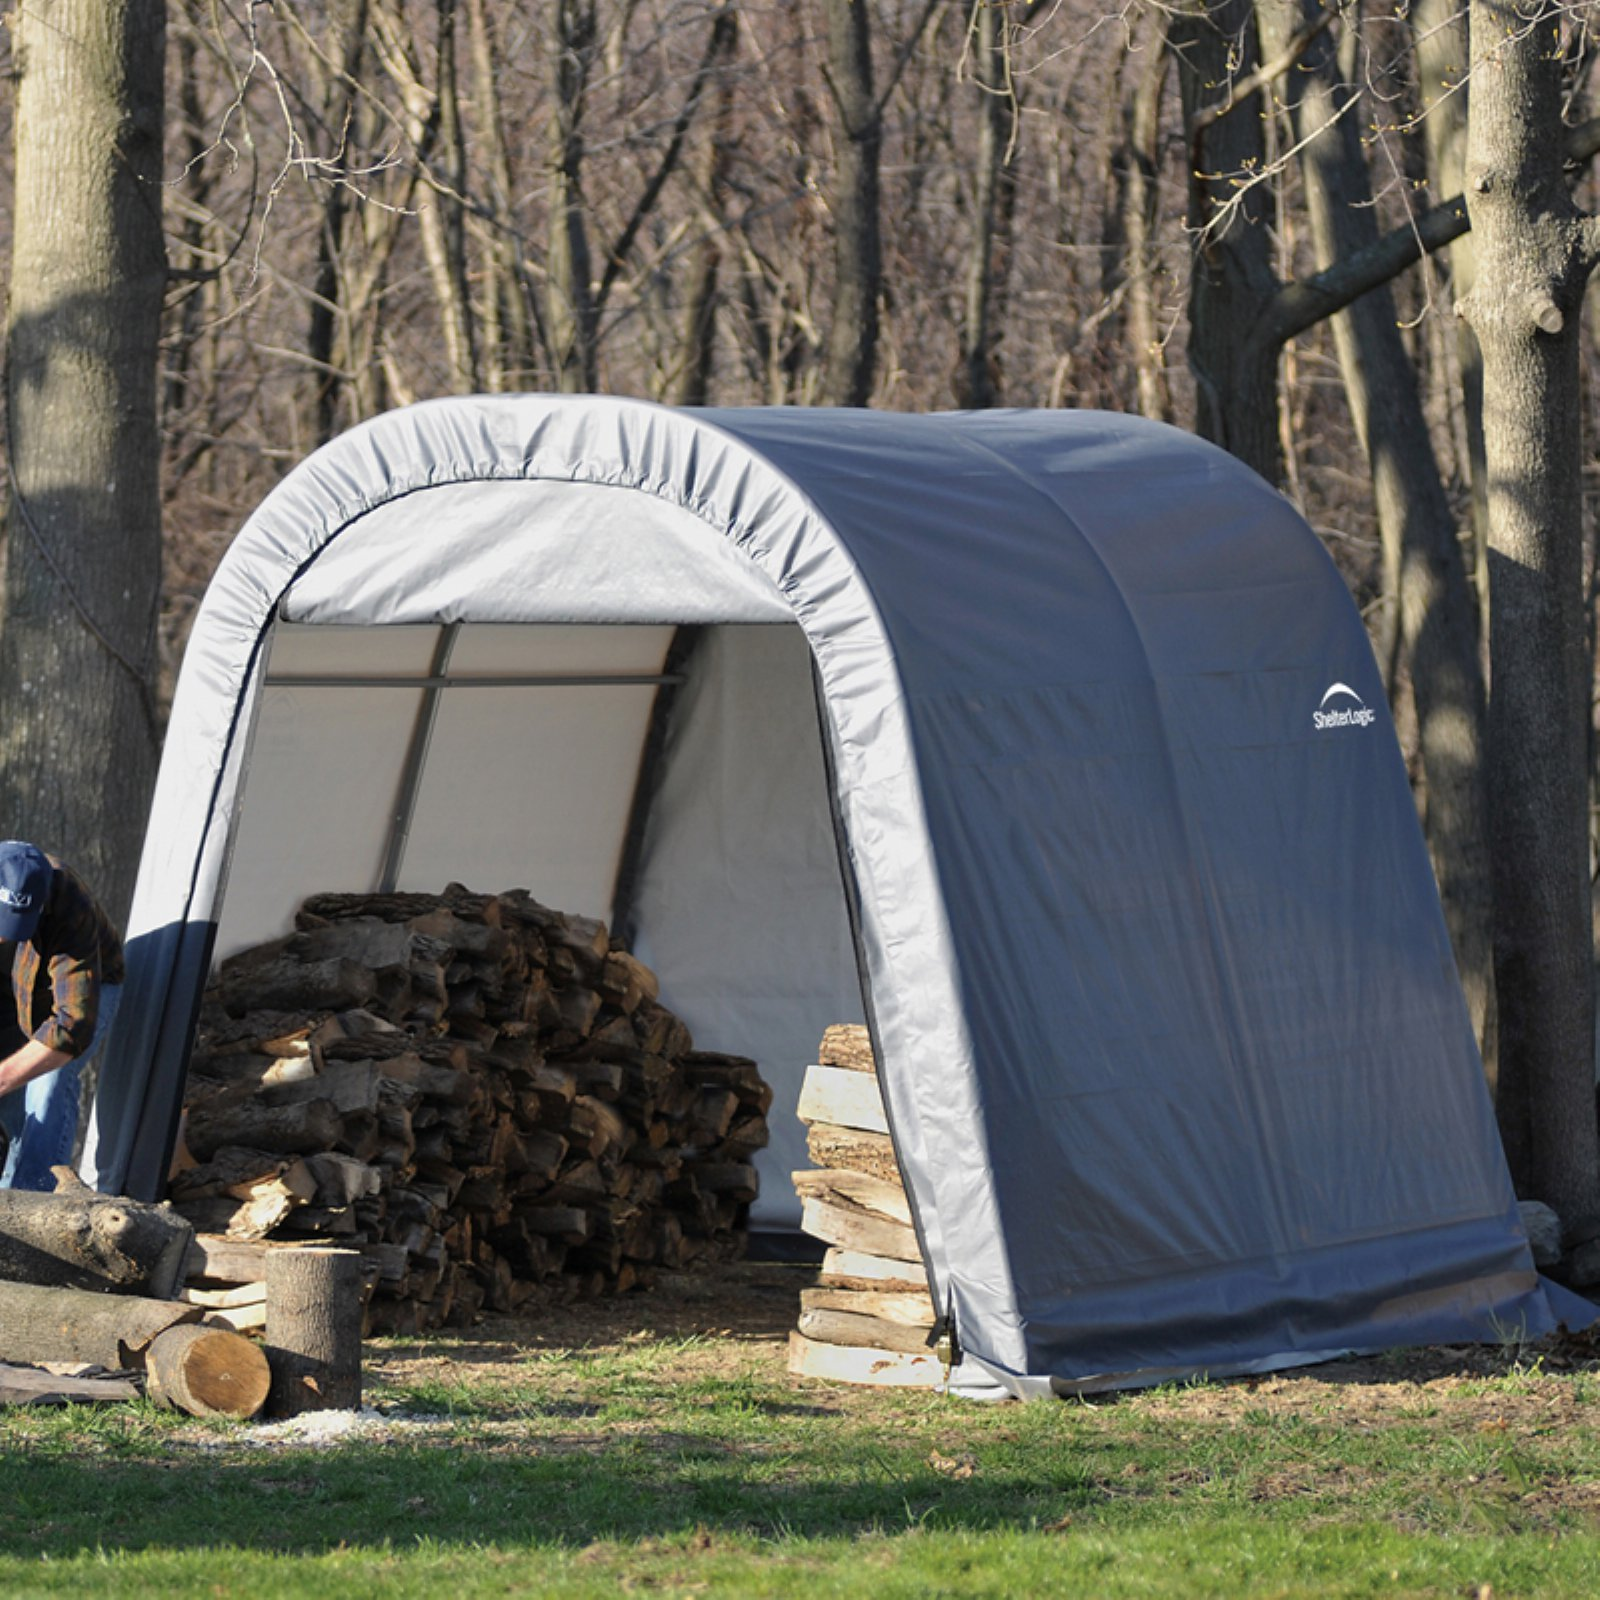 10' x 10' x 8' Round Style Shelter, Green